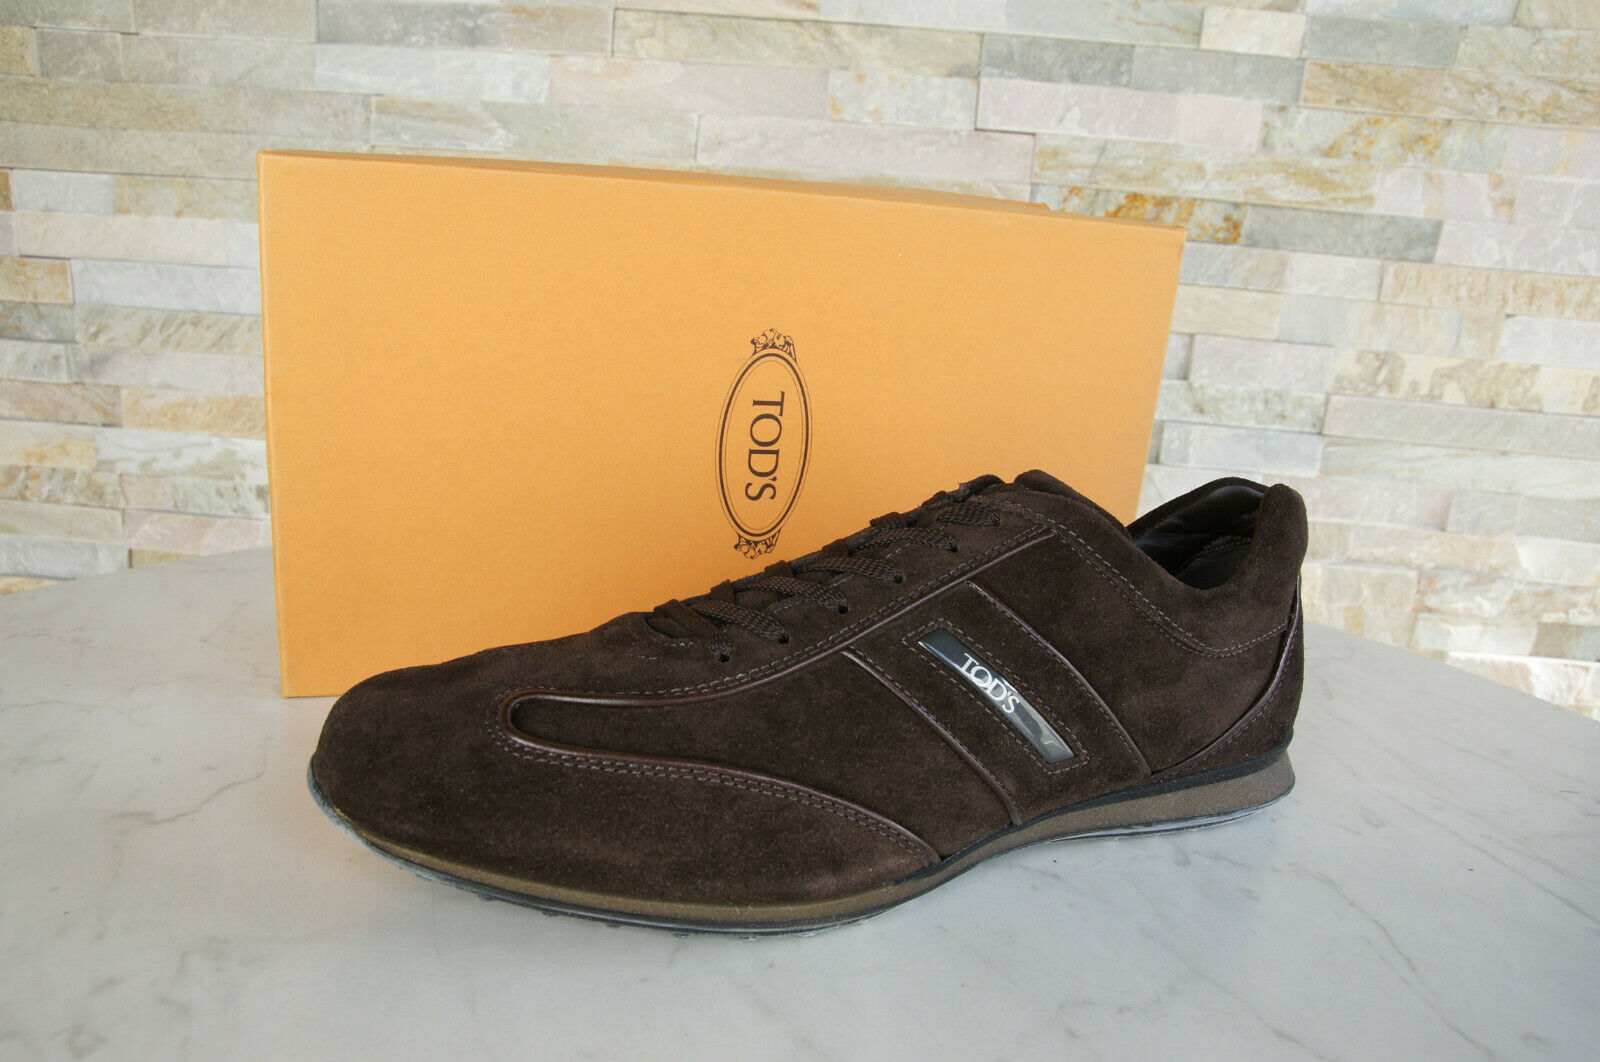 TOD`S Tods Size 45 11 Sneakers Lace up shoes Dark Brown New Previously